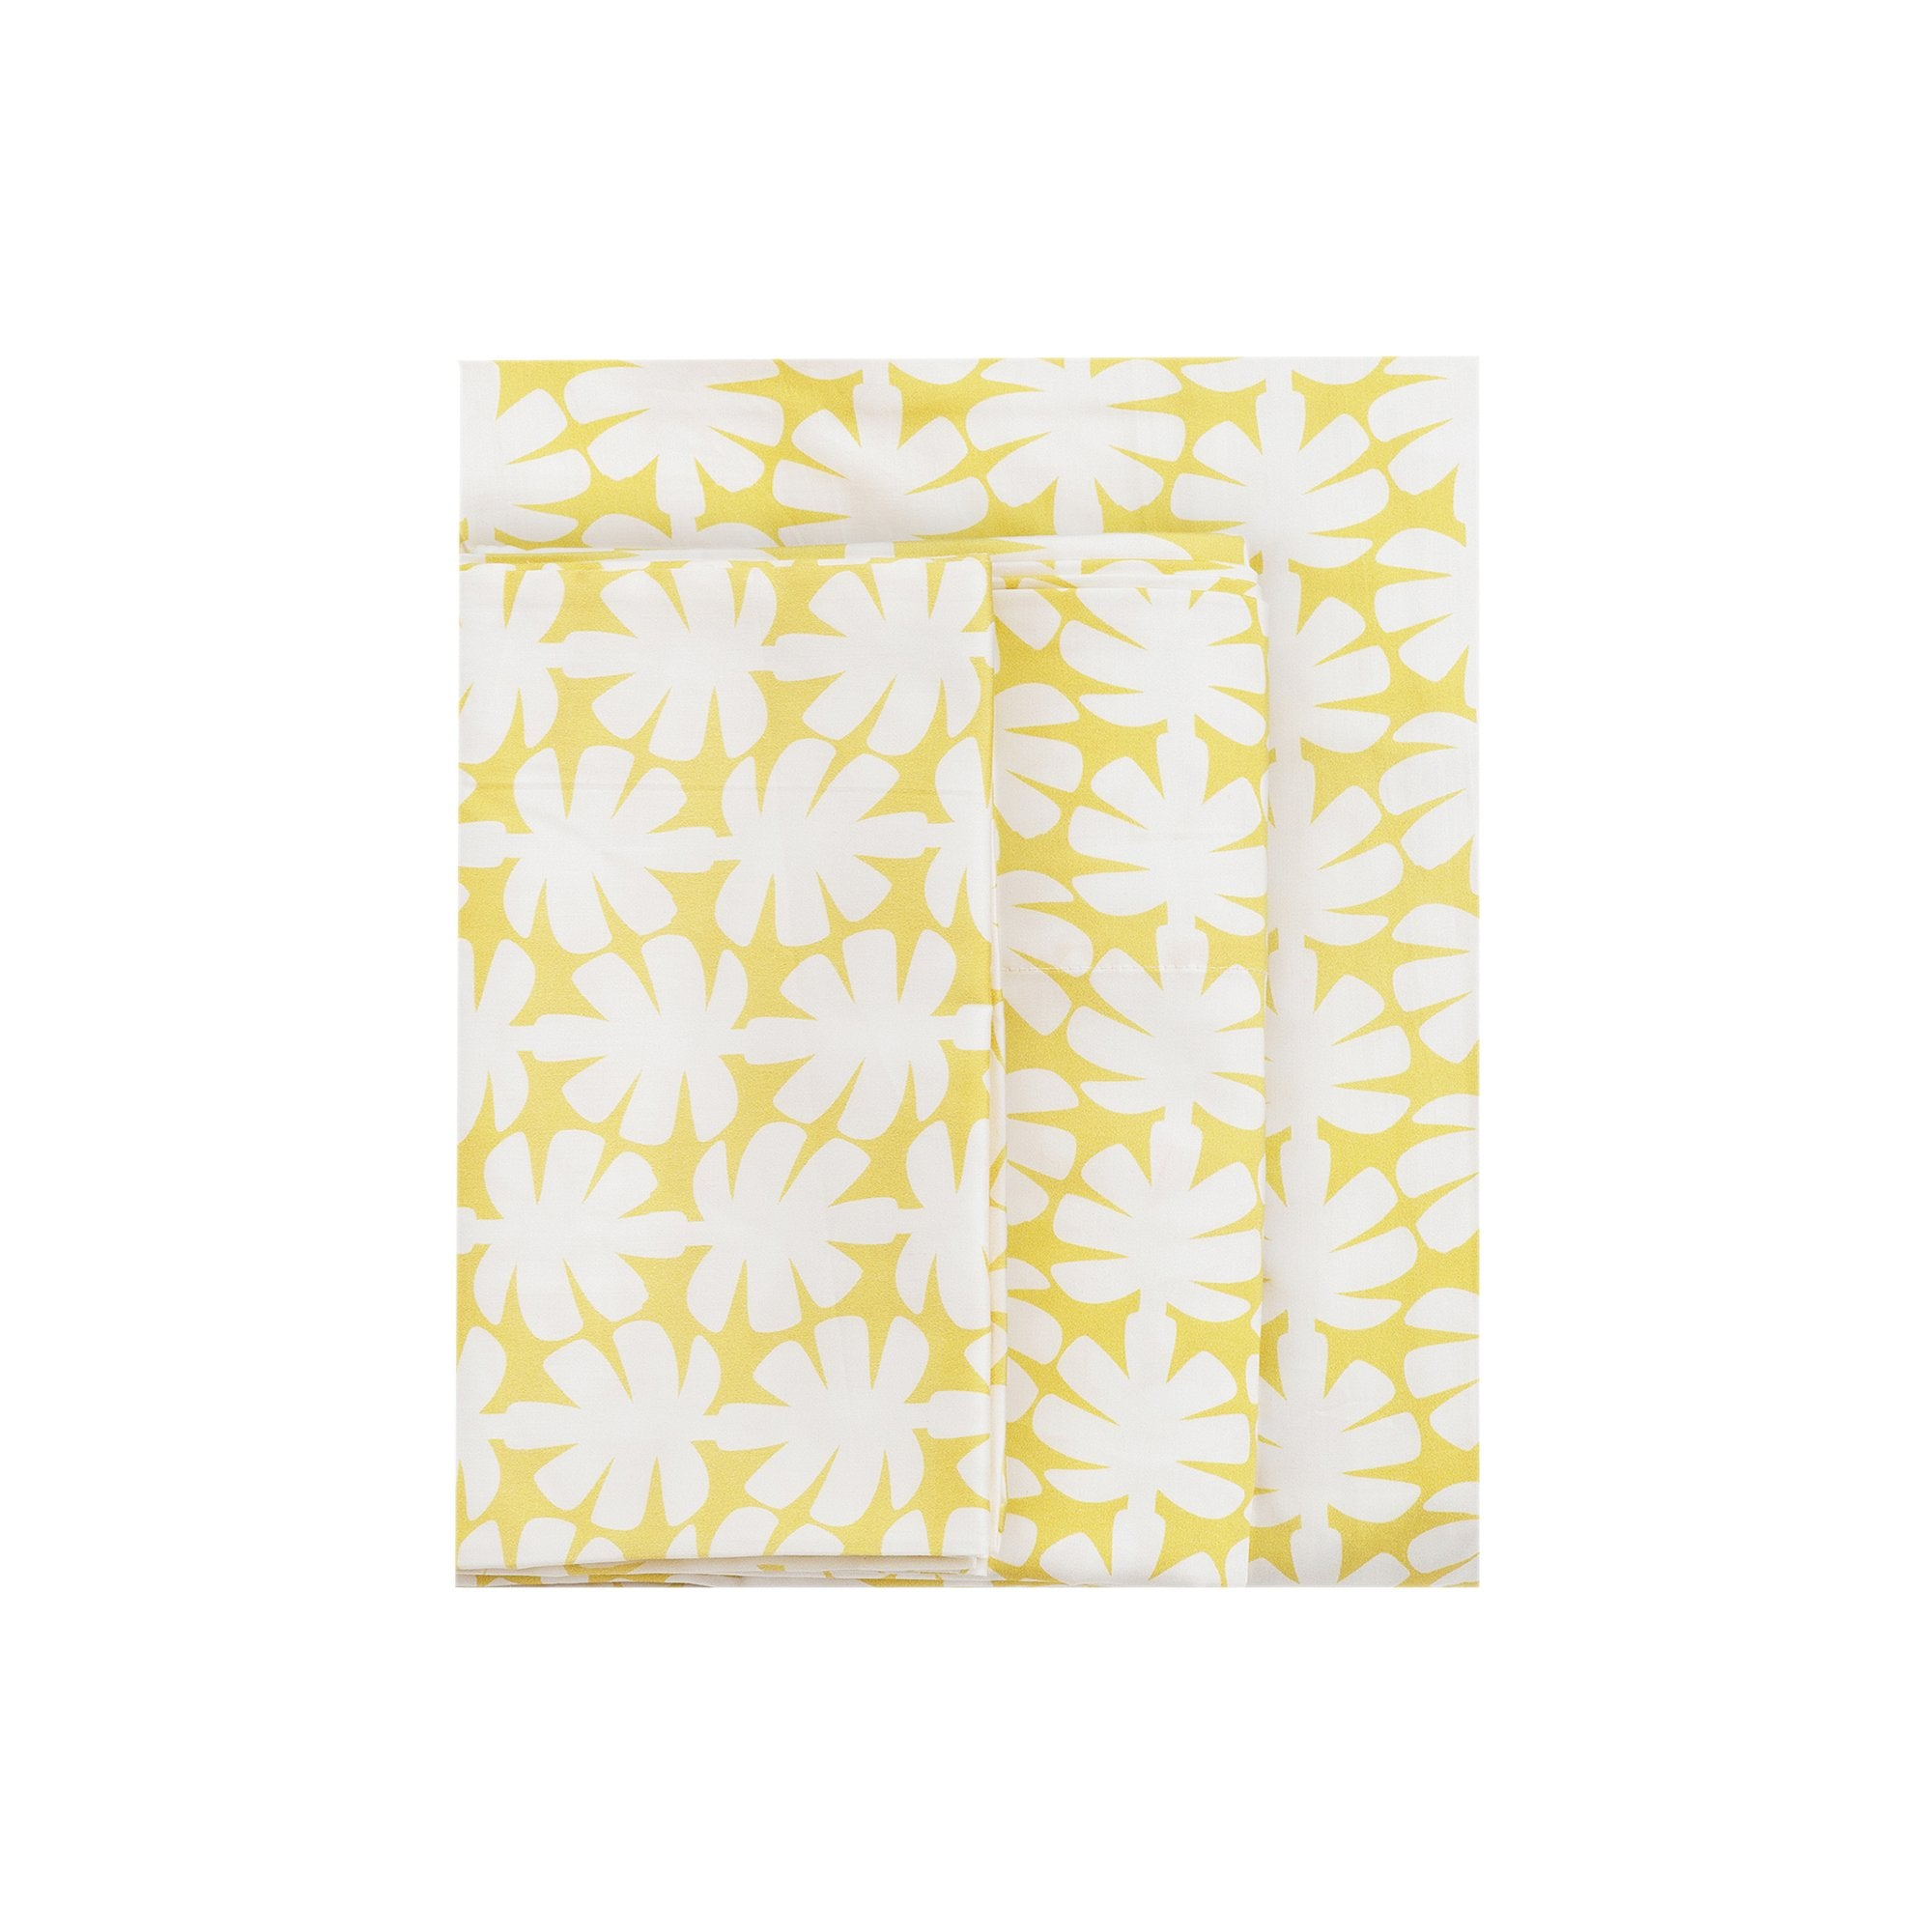 Kikau's Mango Yellow Coco Palm kids sheet set on white background